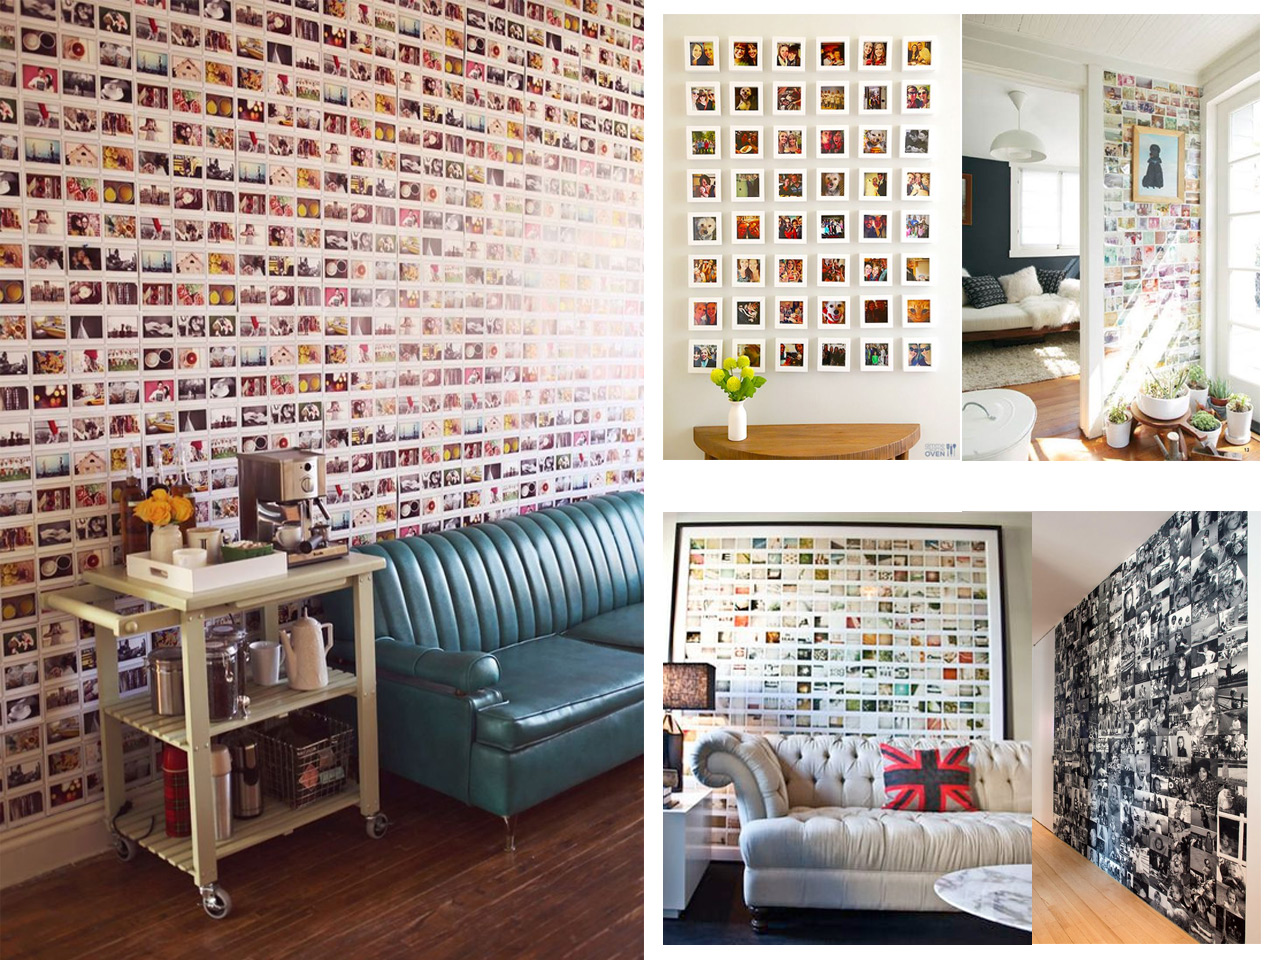 60 brillantes ideas para decorar con fotos familiares for Colgar muebles sin taladrar